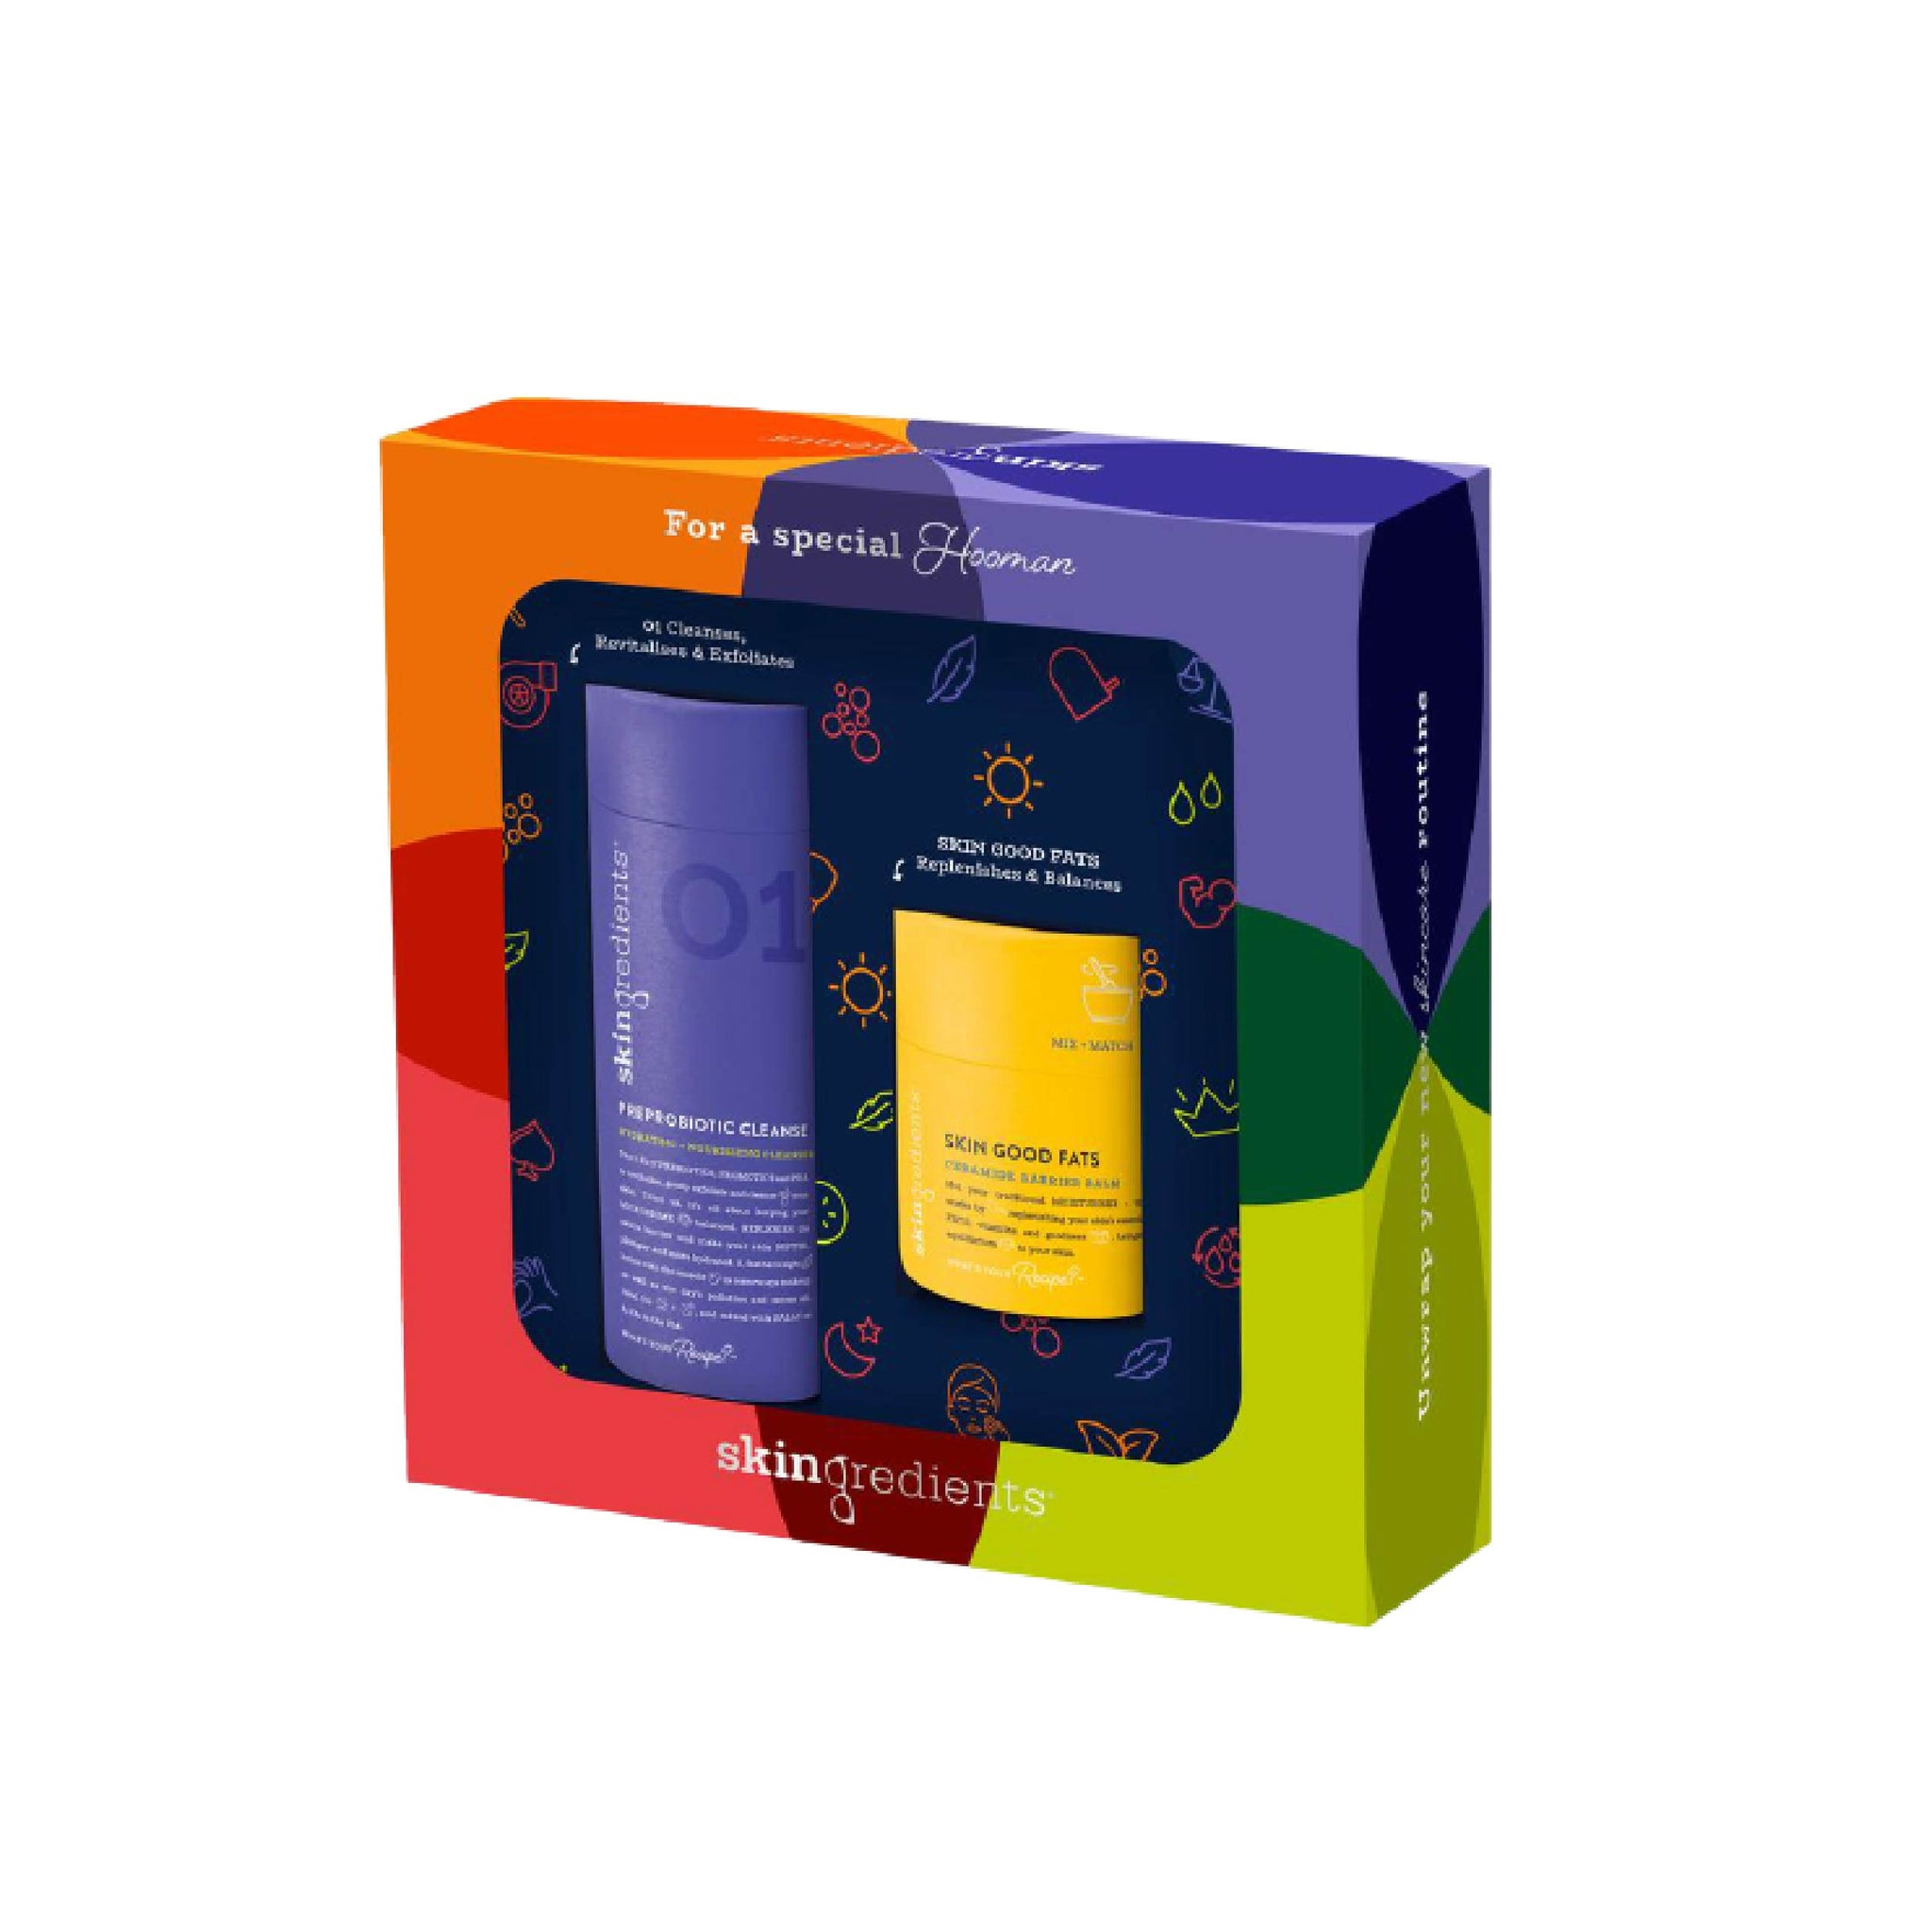 Skingredients Preprobiotic Cleanser + Good Fats Gift Set